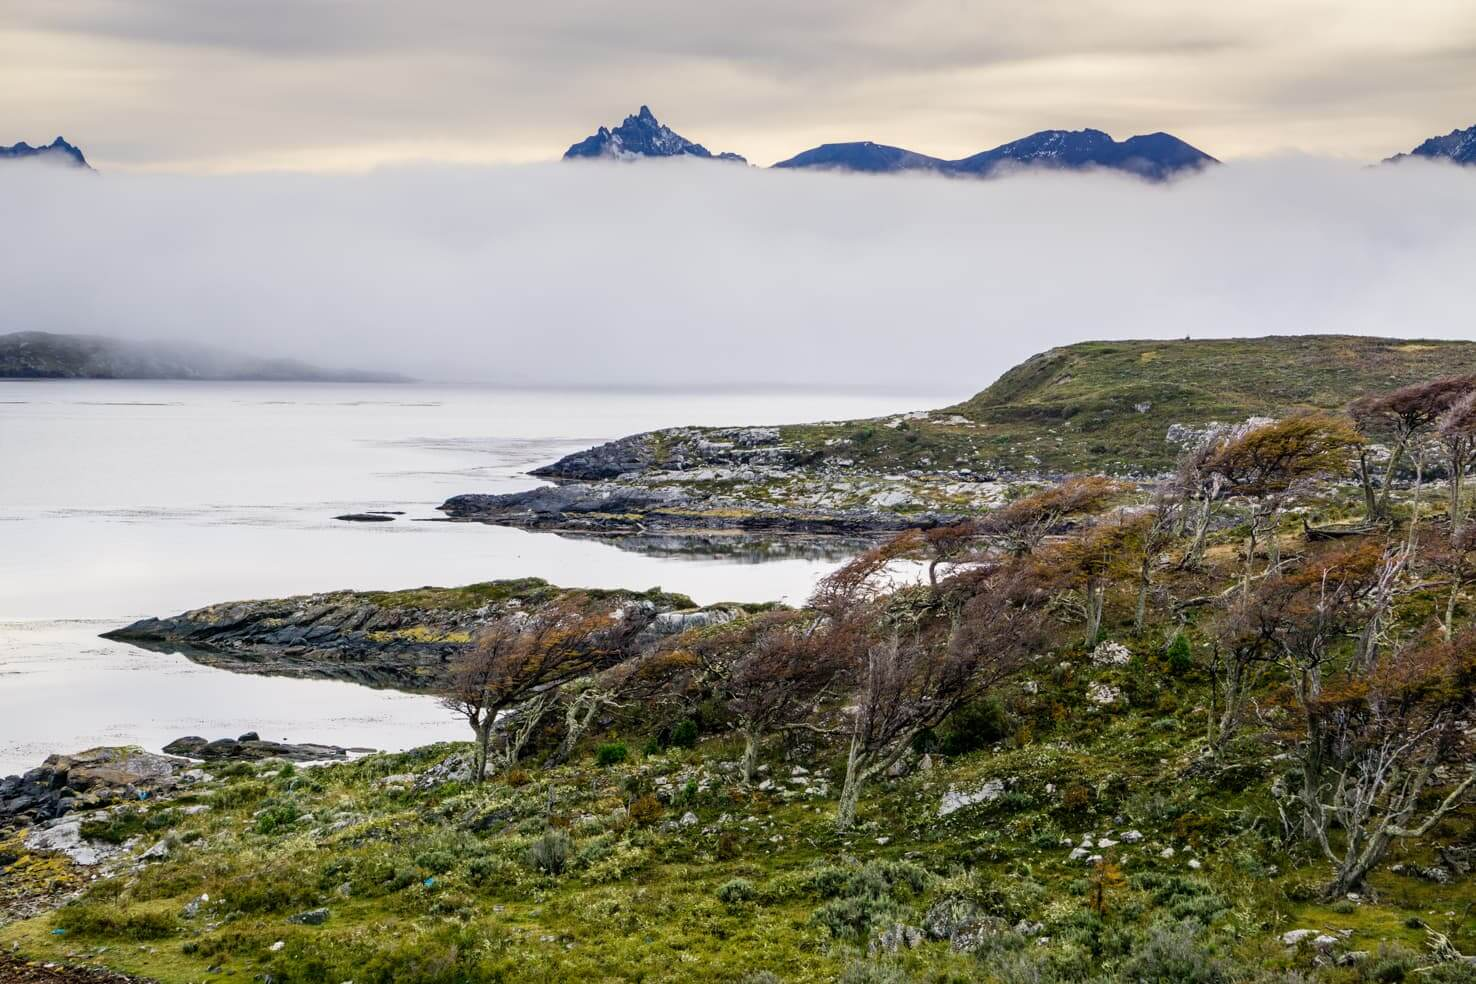 Puerto Williams, Chile - southernmost city in the world - Navarino Island